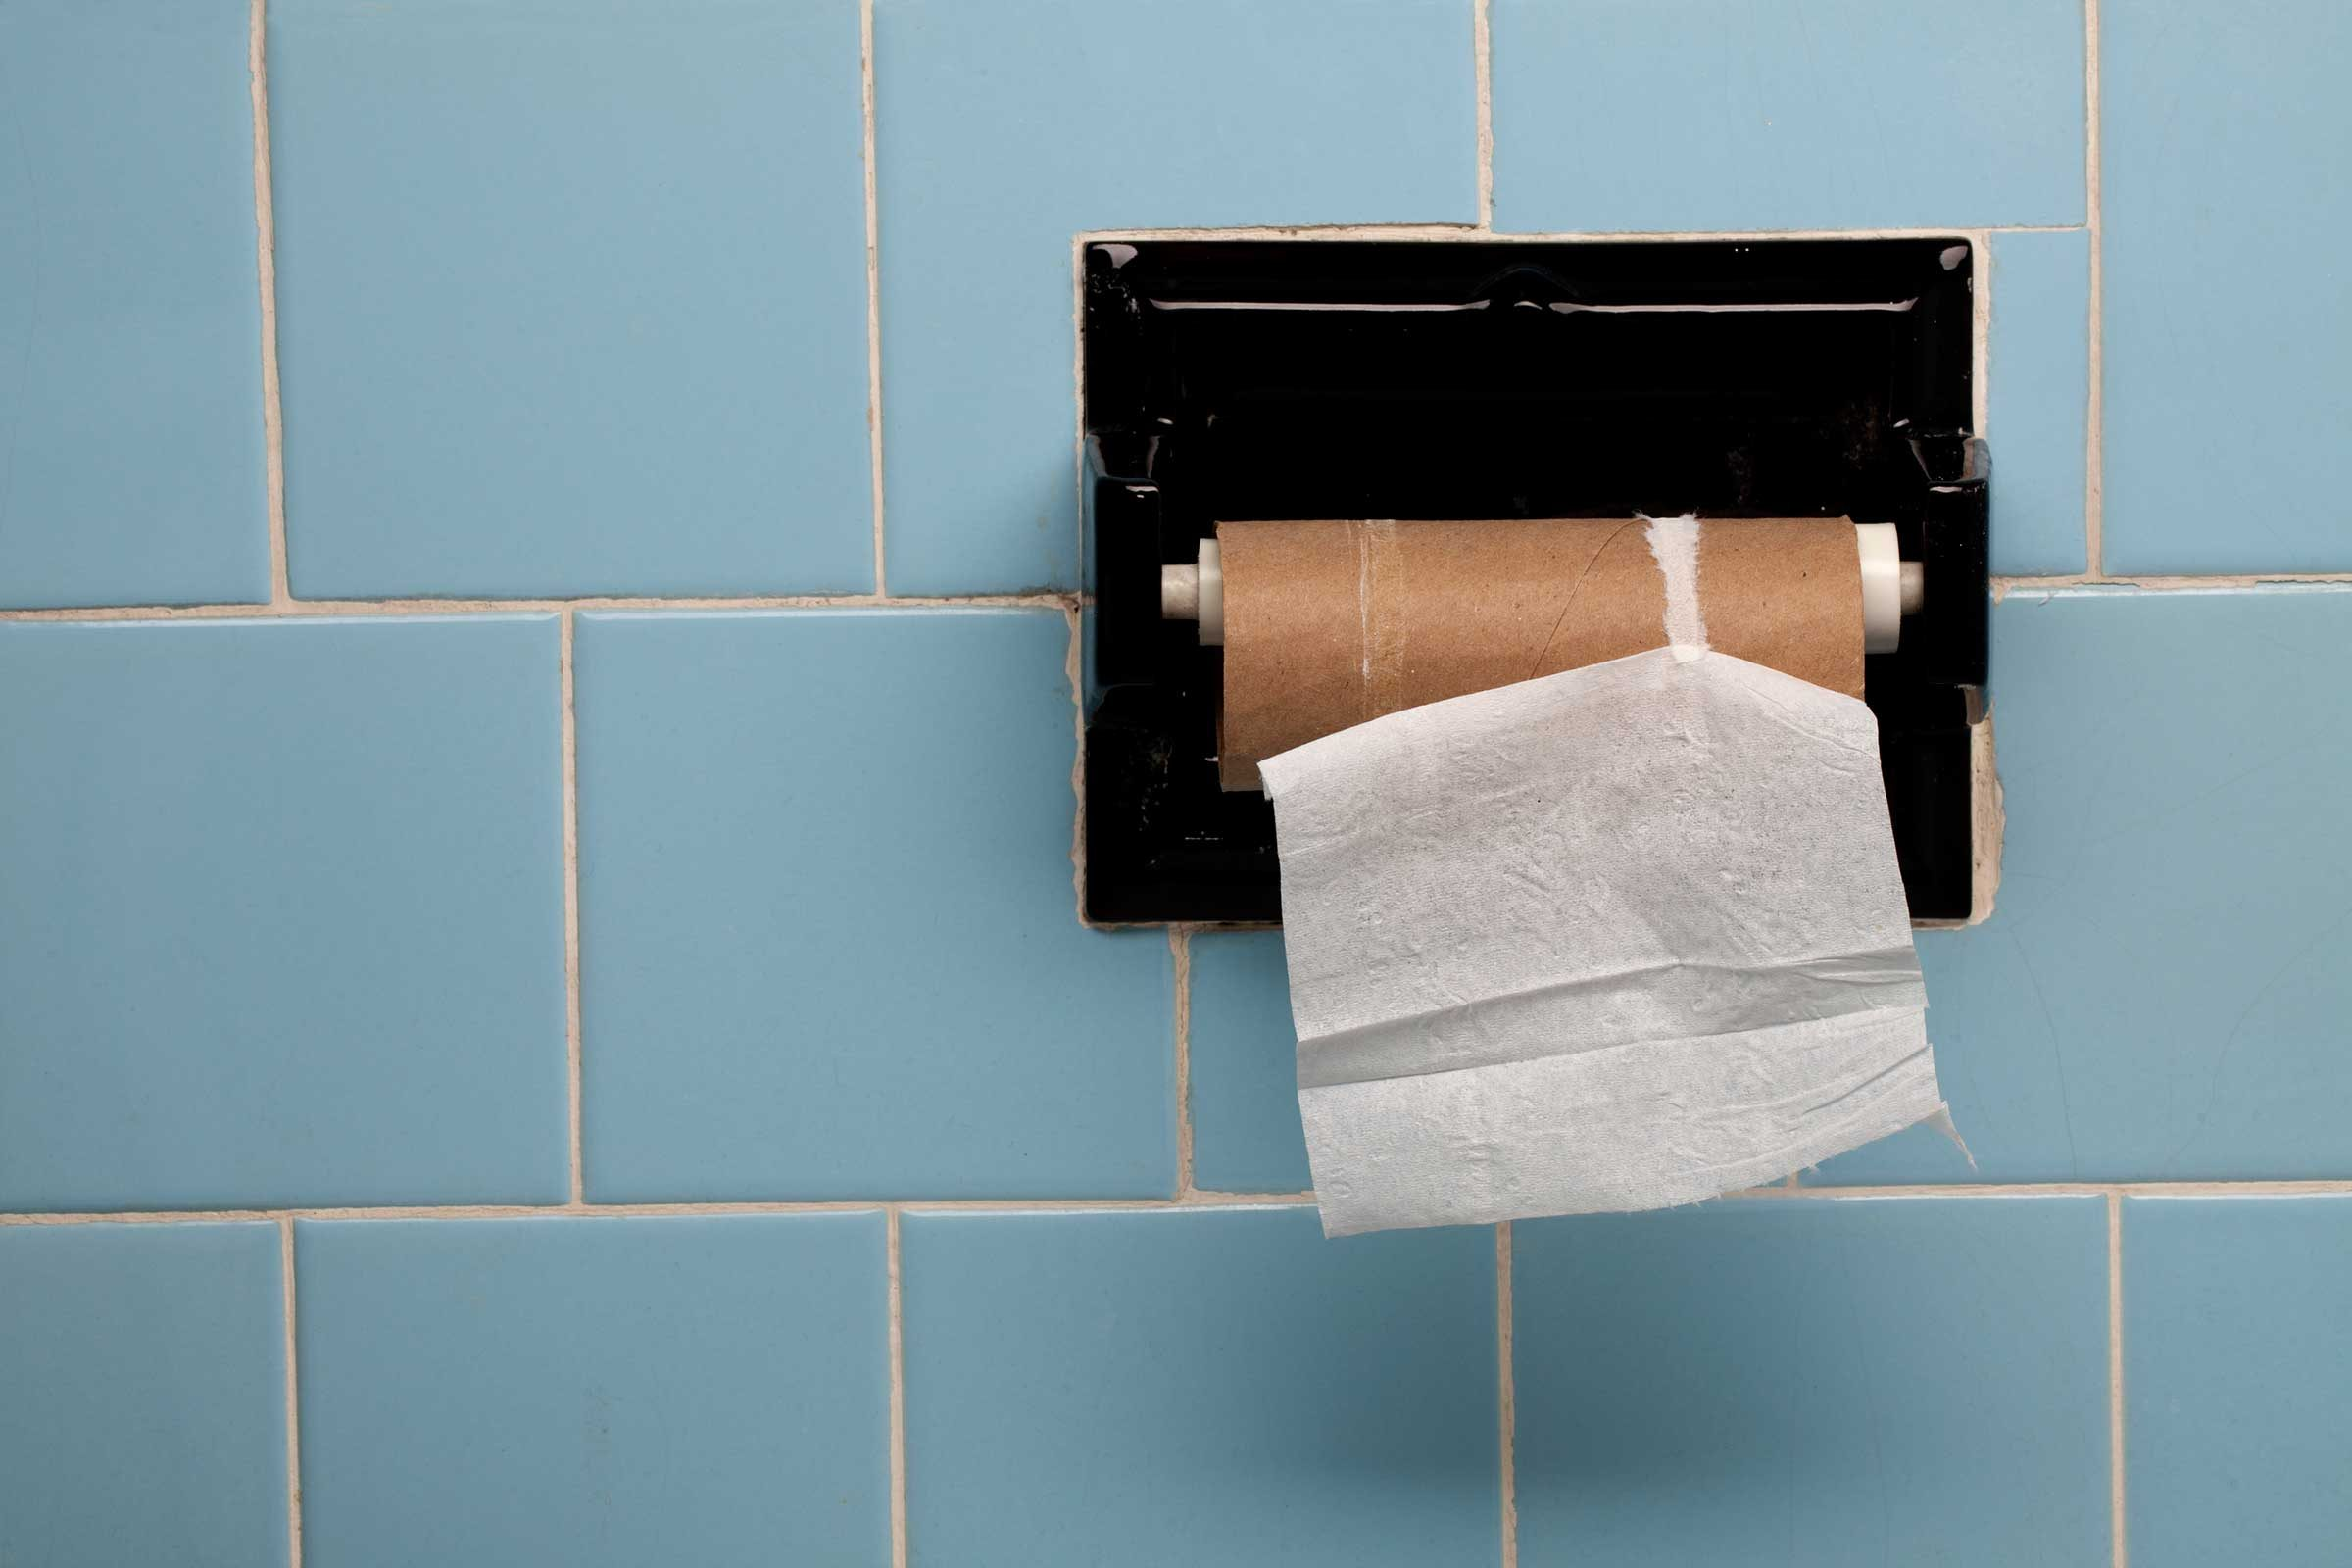 Does coffee help you go to the bathroom - Too Few Or Too Many Bowel Movements Can Indicate Trouble